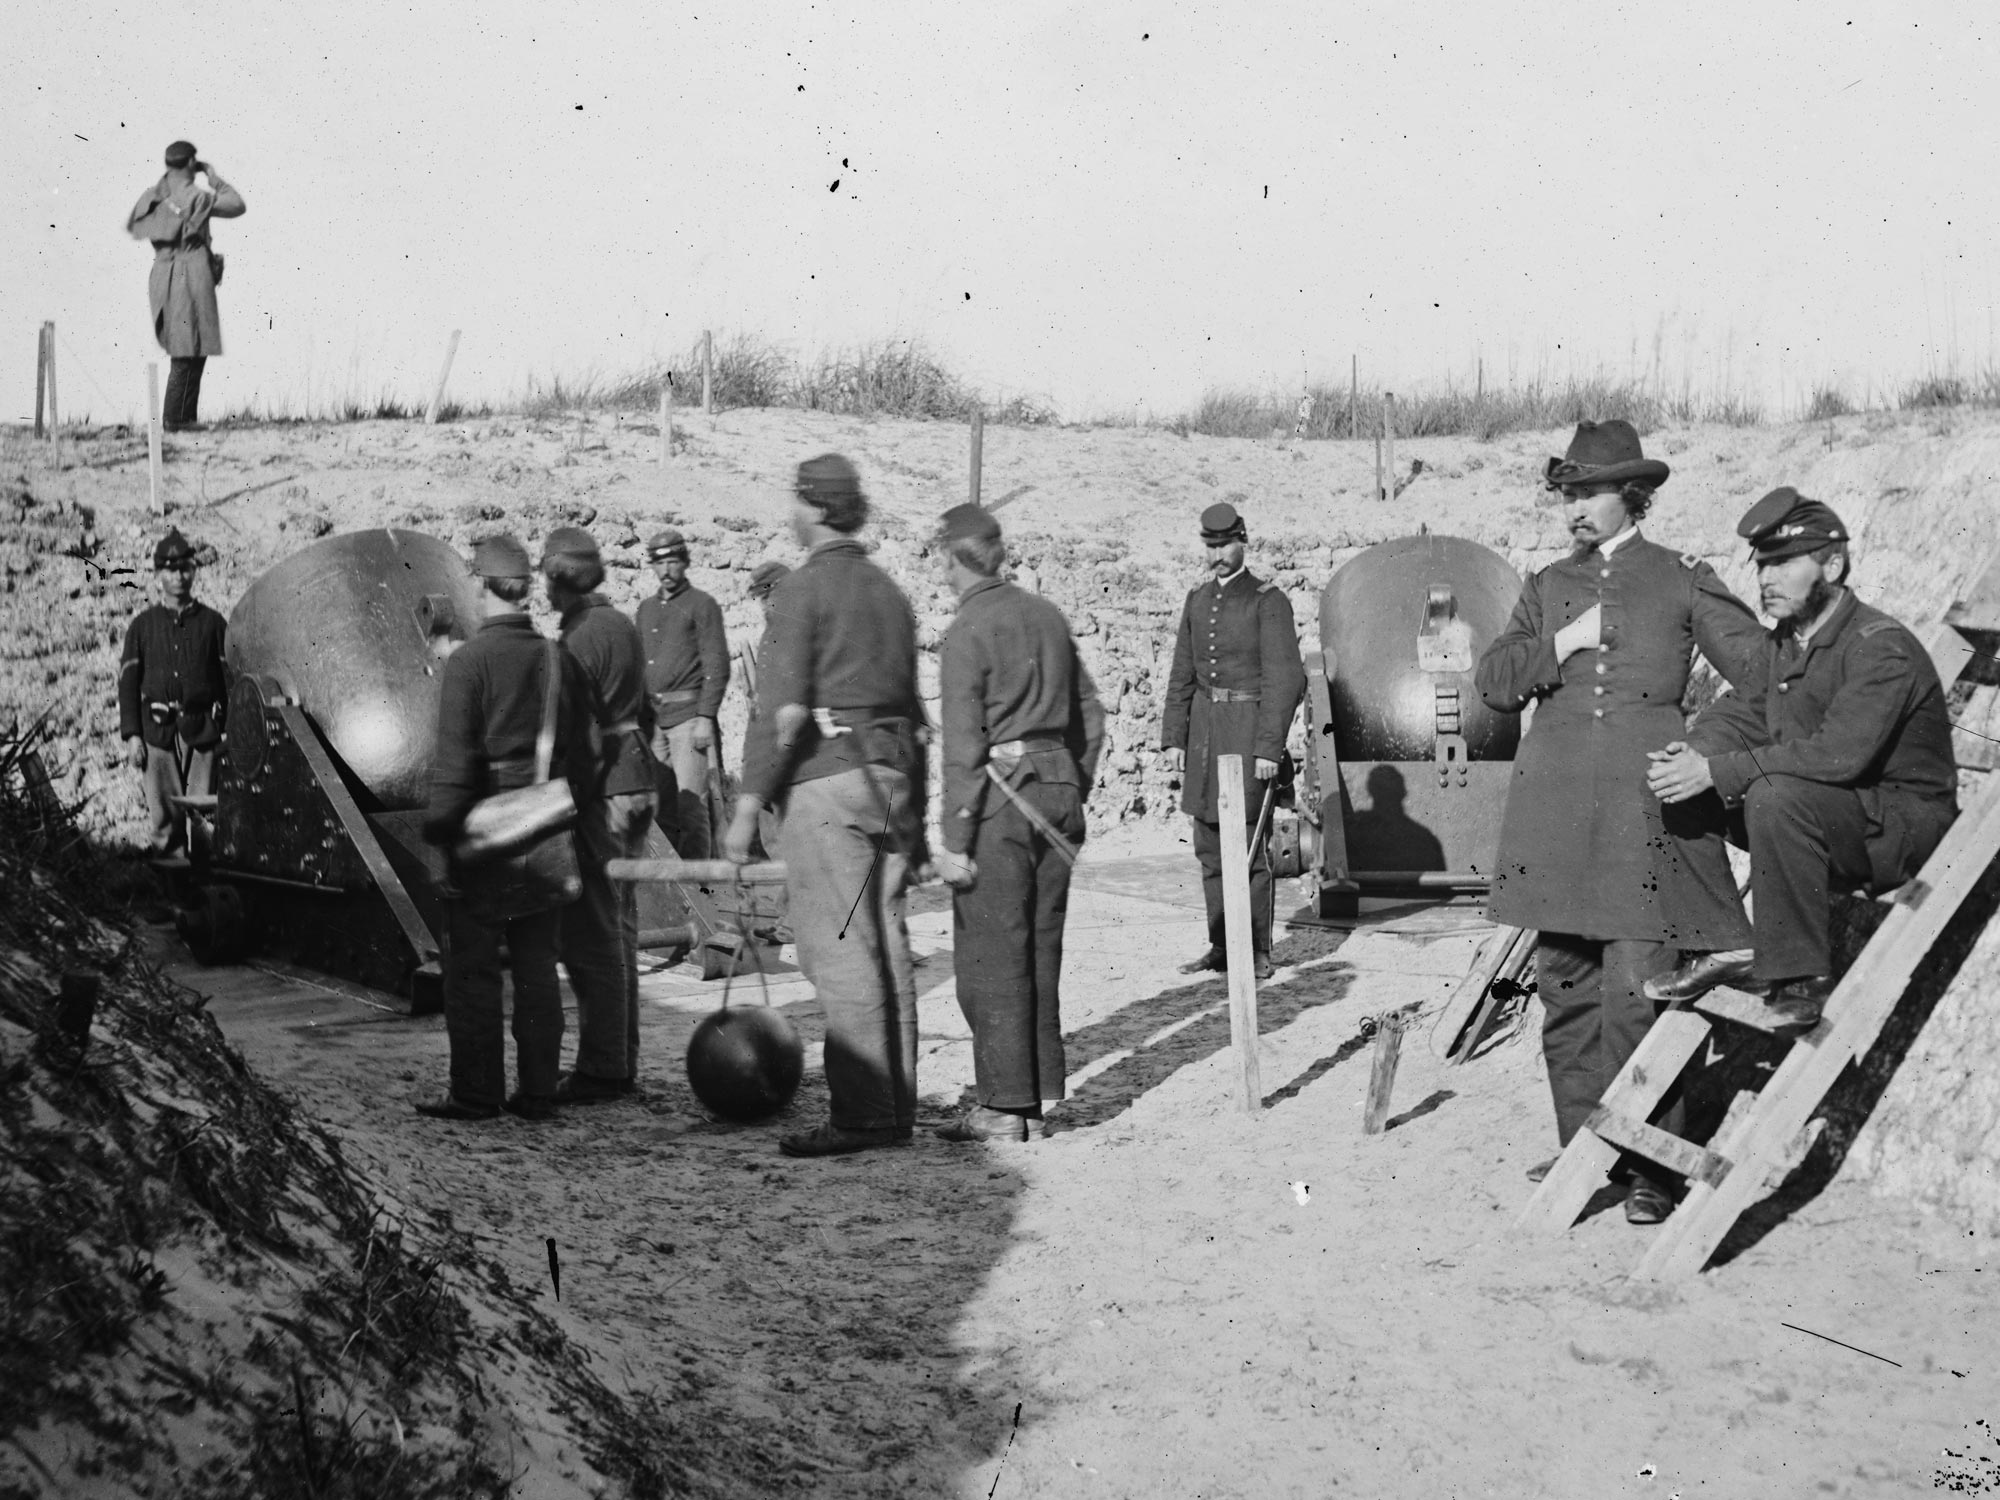 1865  An enlisted man in a mortar crew at Morris Island, SC opposing Ft. Sumter wears dark blue trousers. (LOC#: LC-B811-3513)